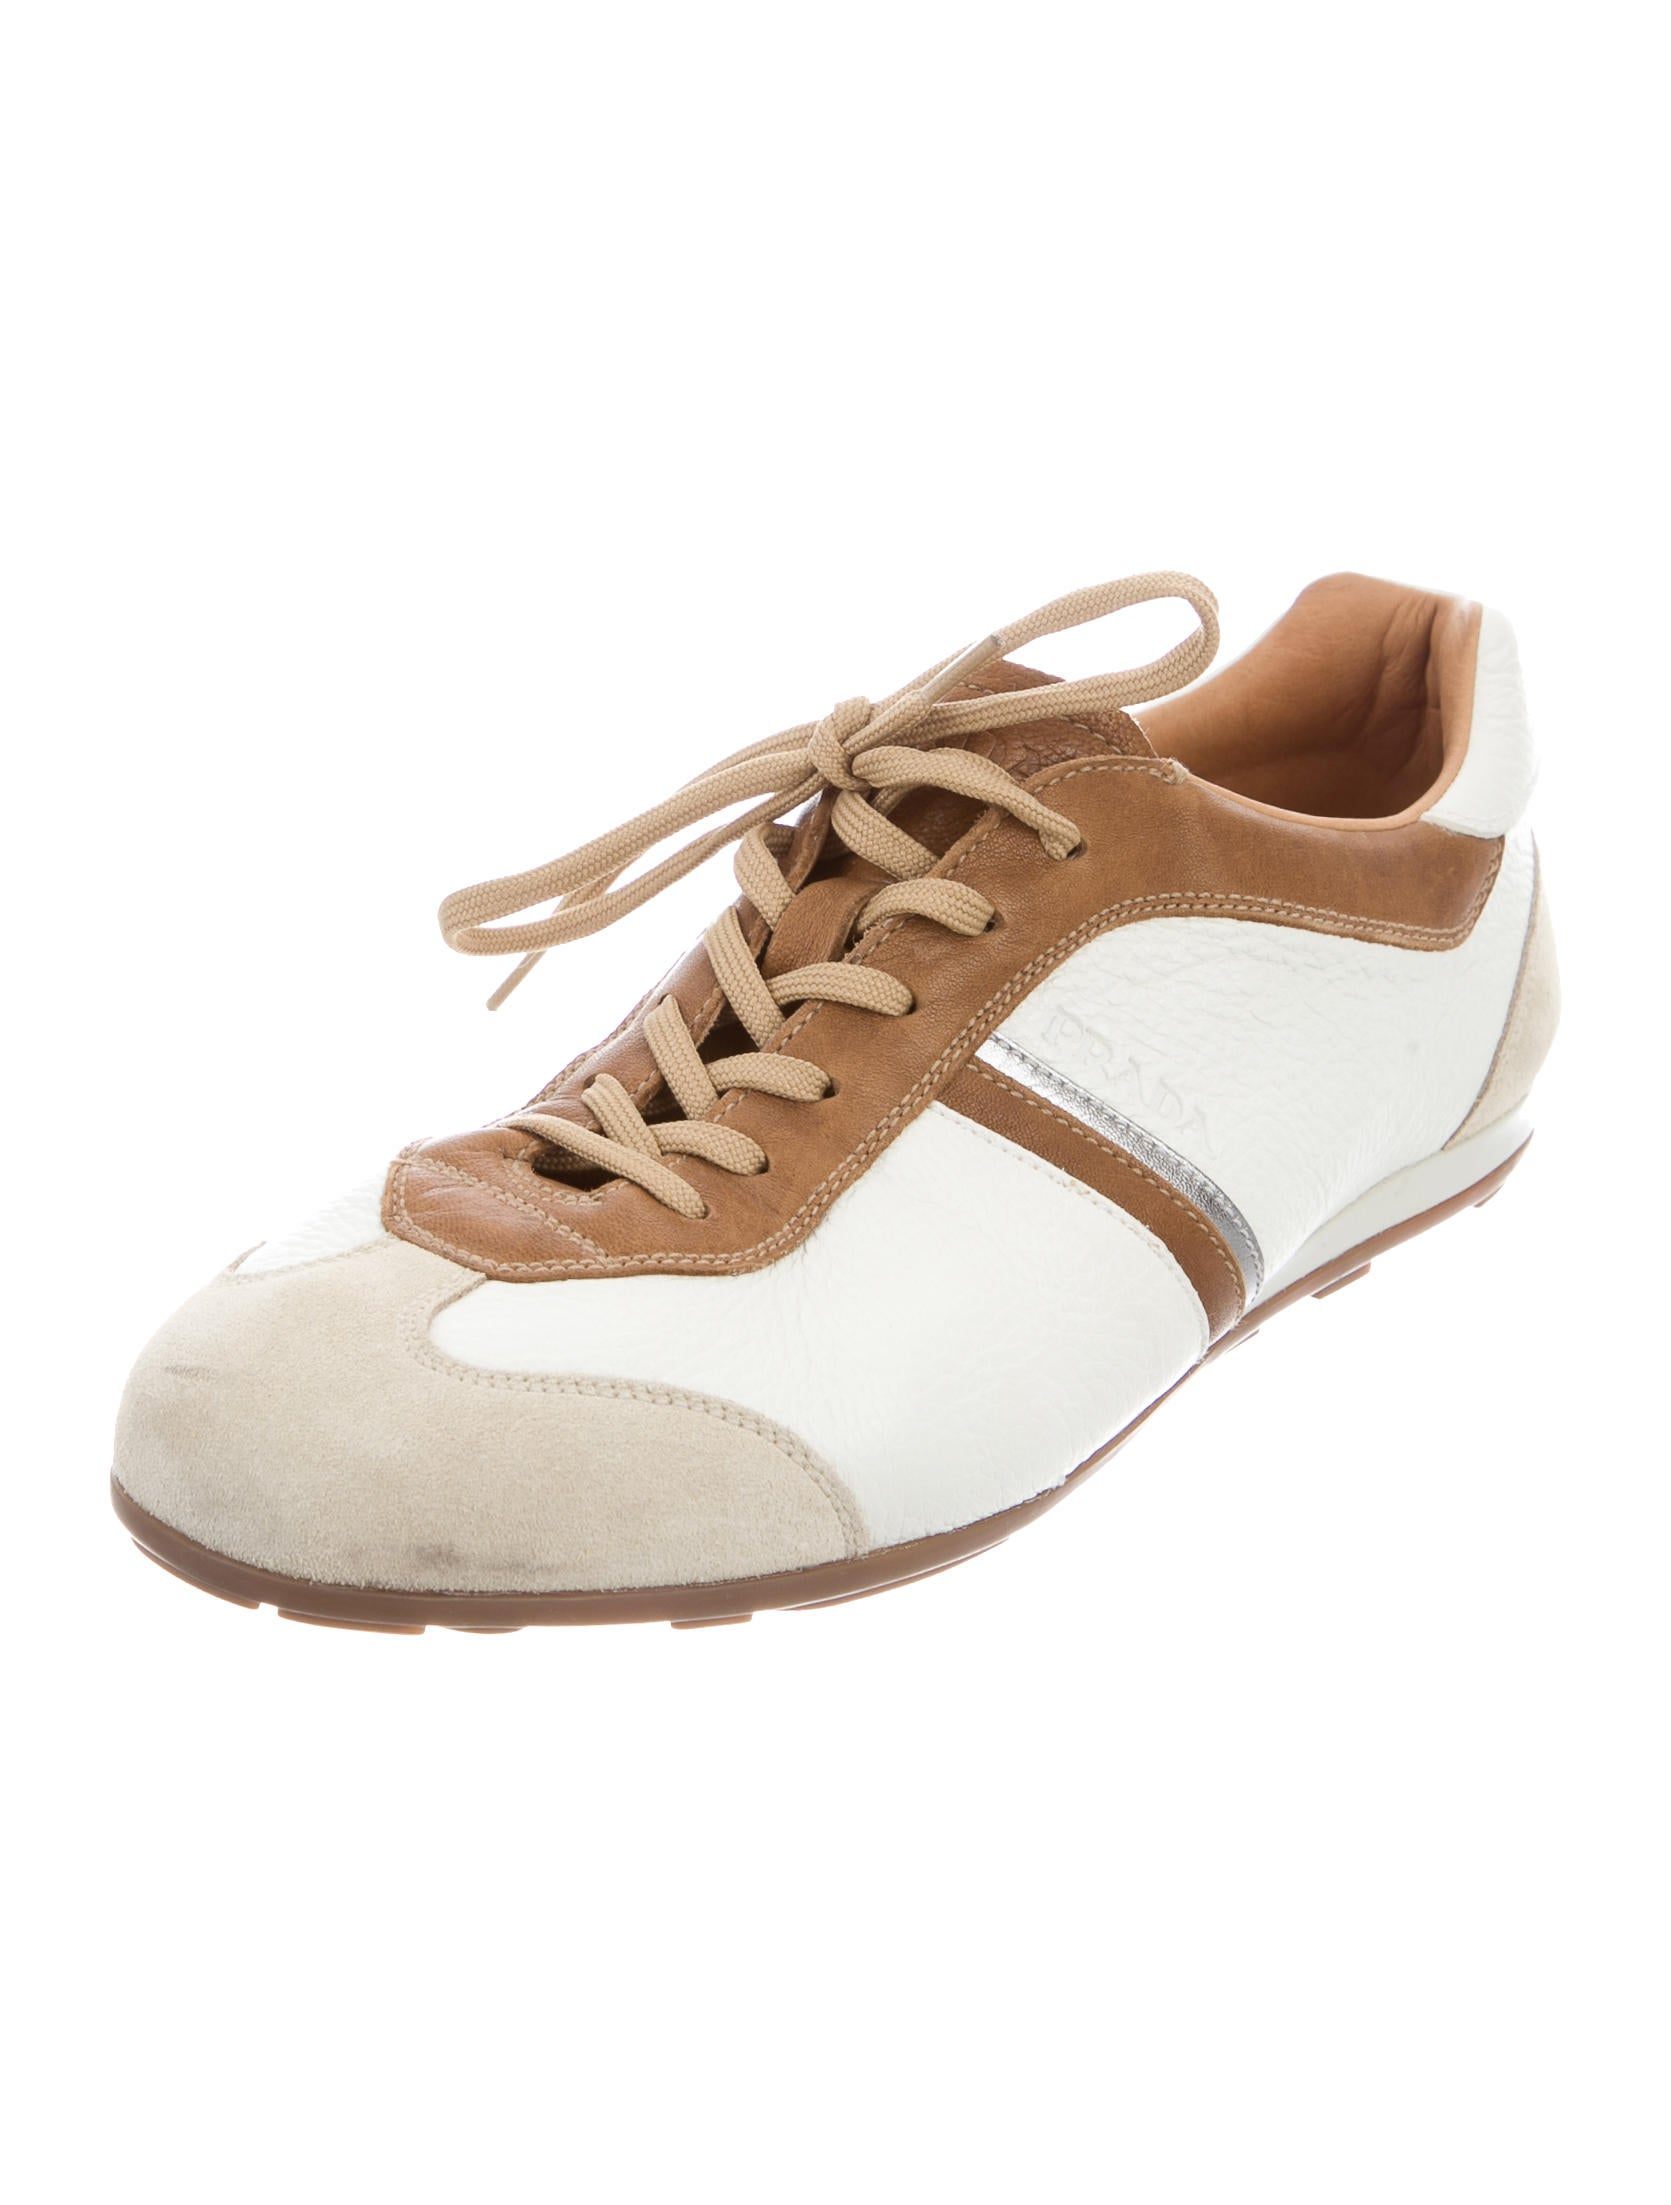 prada sport leather sneakers shoes wpr39696 the